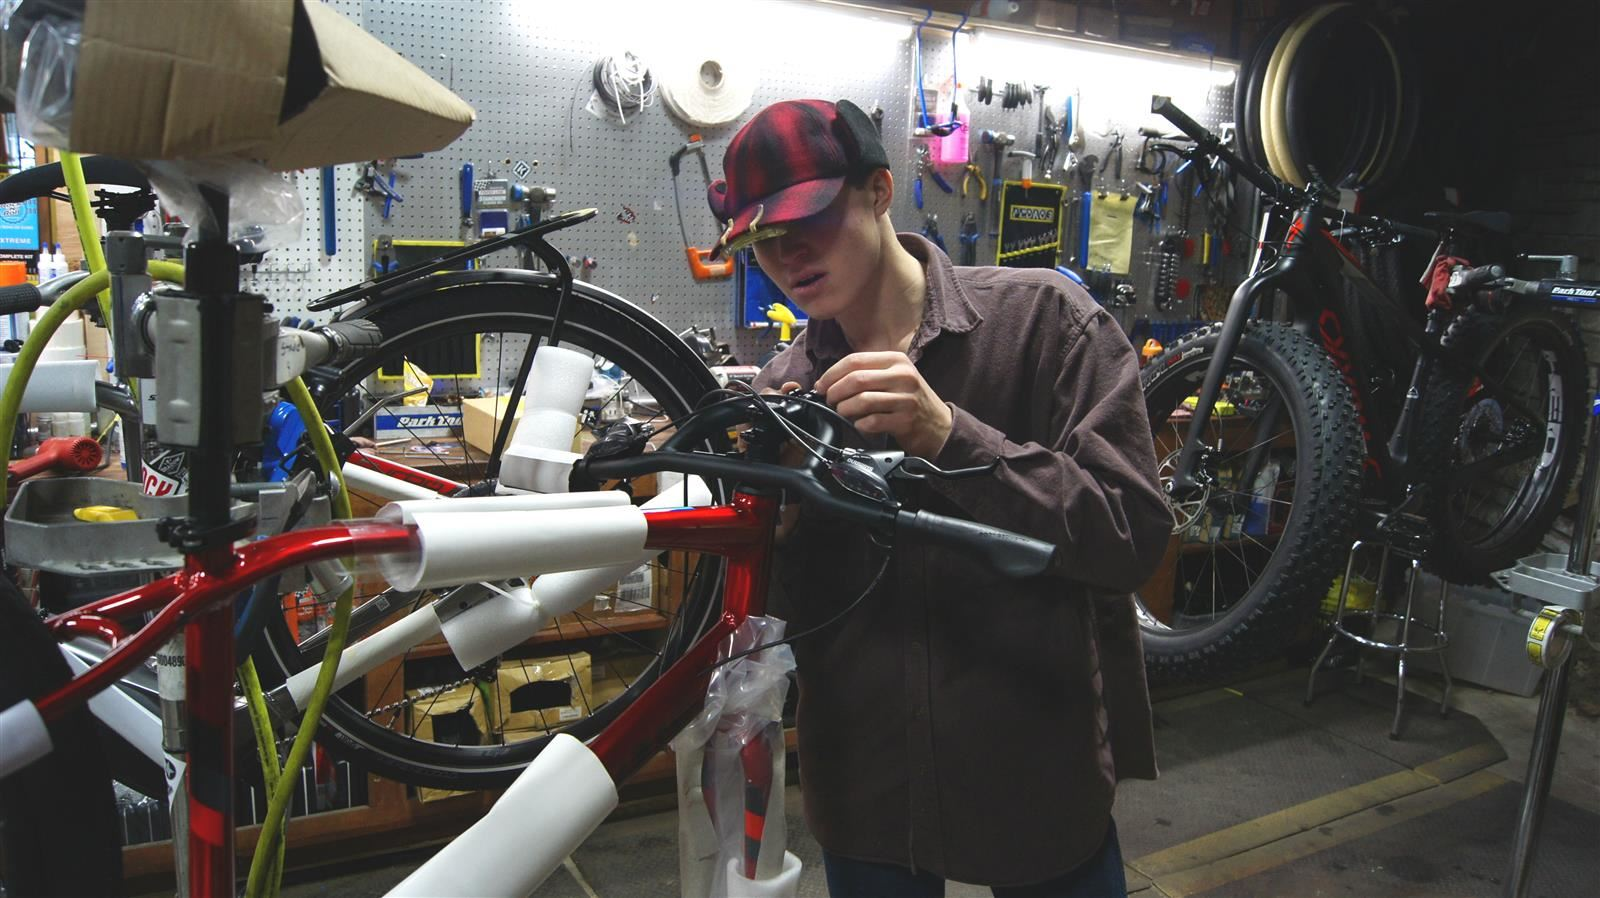 Student repairing bicycle